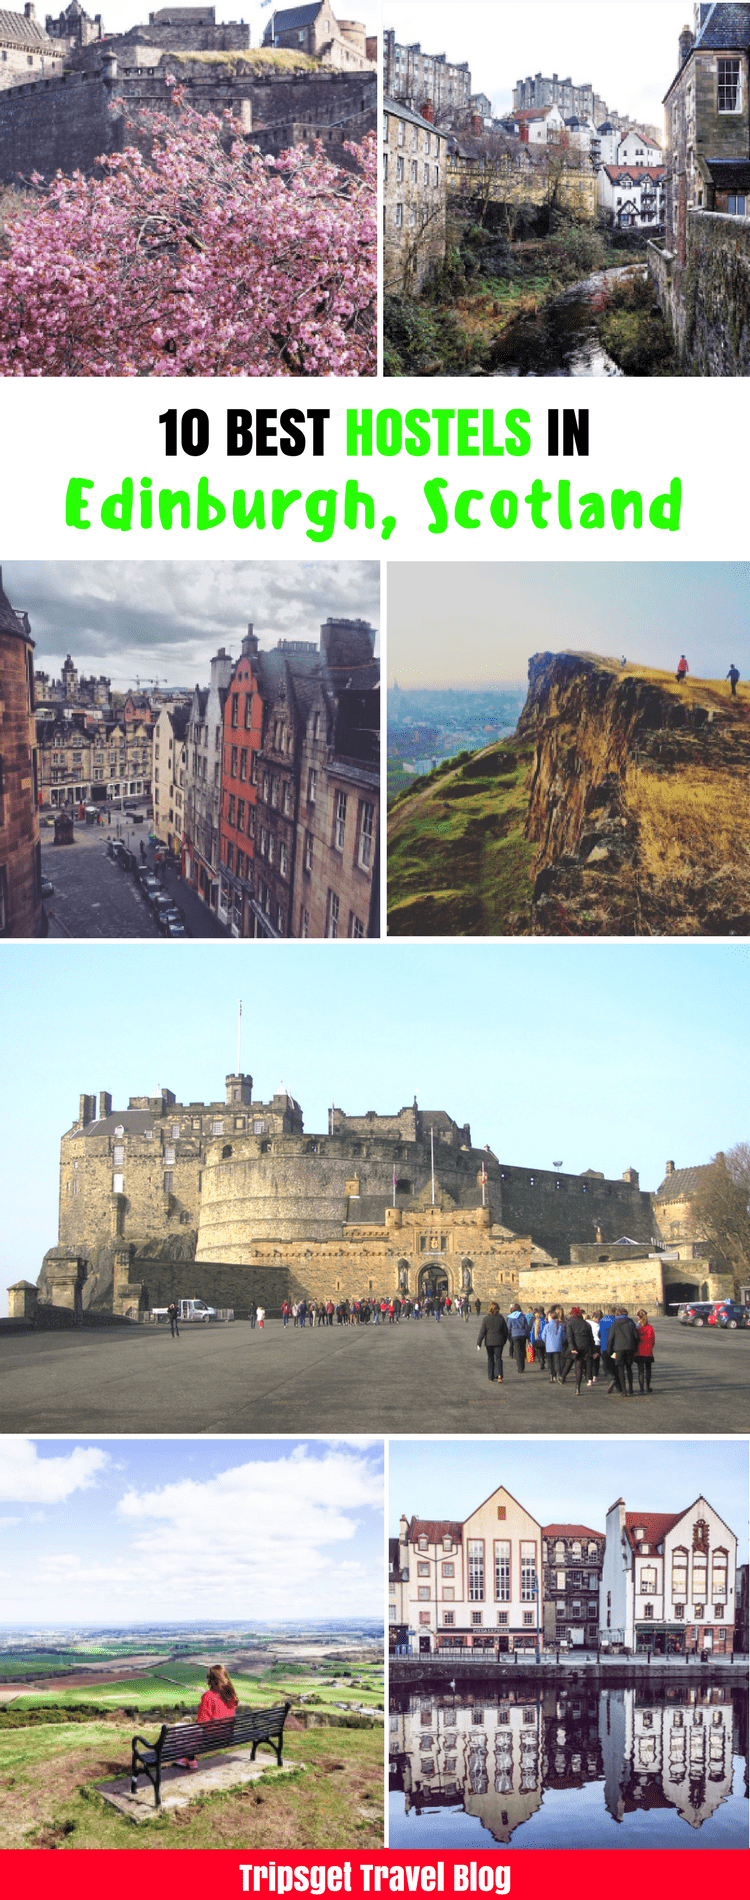 Best hostels in Edinburgh City Centre, Scottish Hostels, Edinburgh on a budget, cheap accommodation in Edinburgh